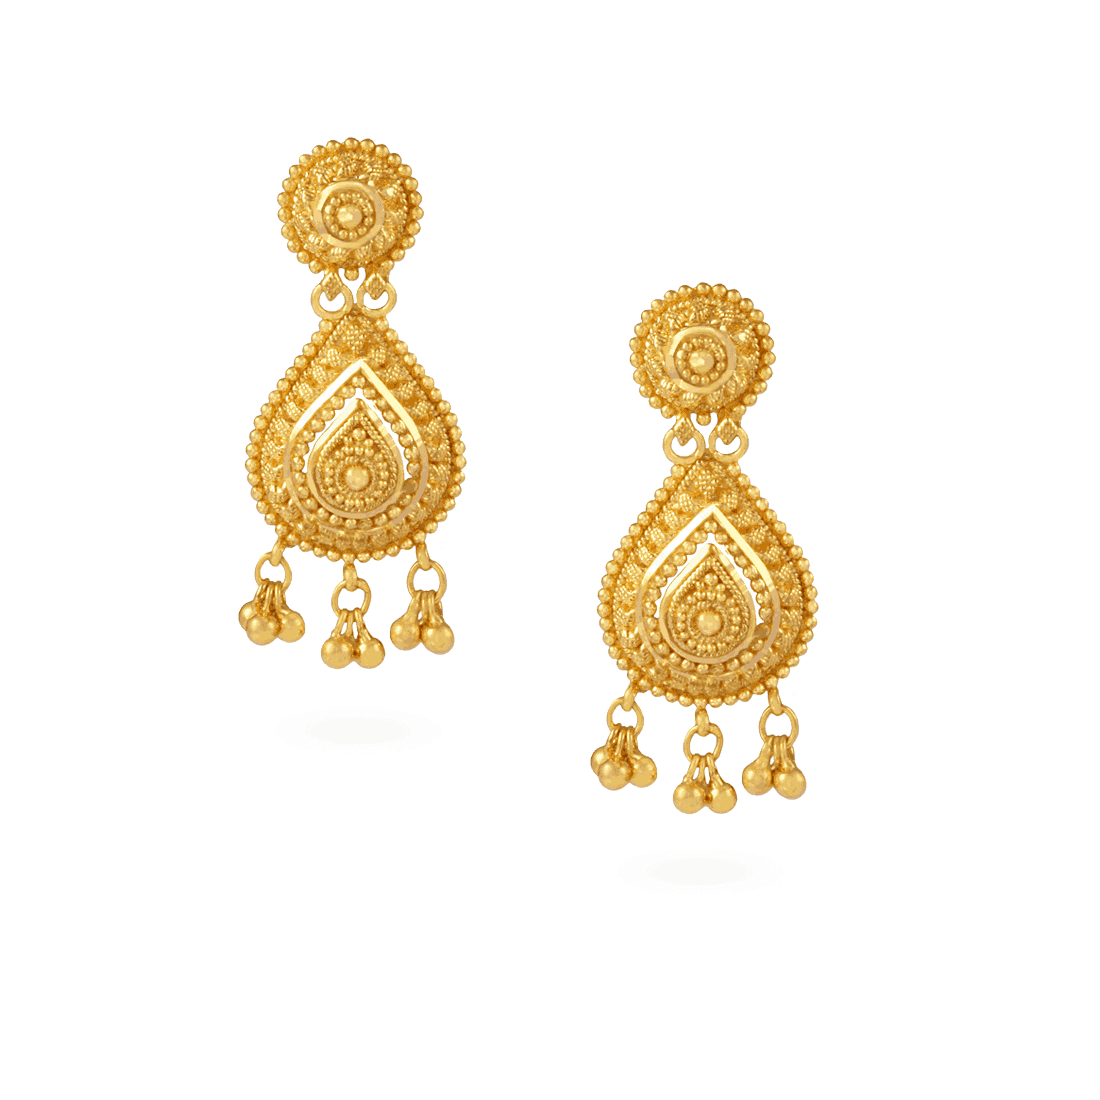 earrings_21287_1100px.png